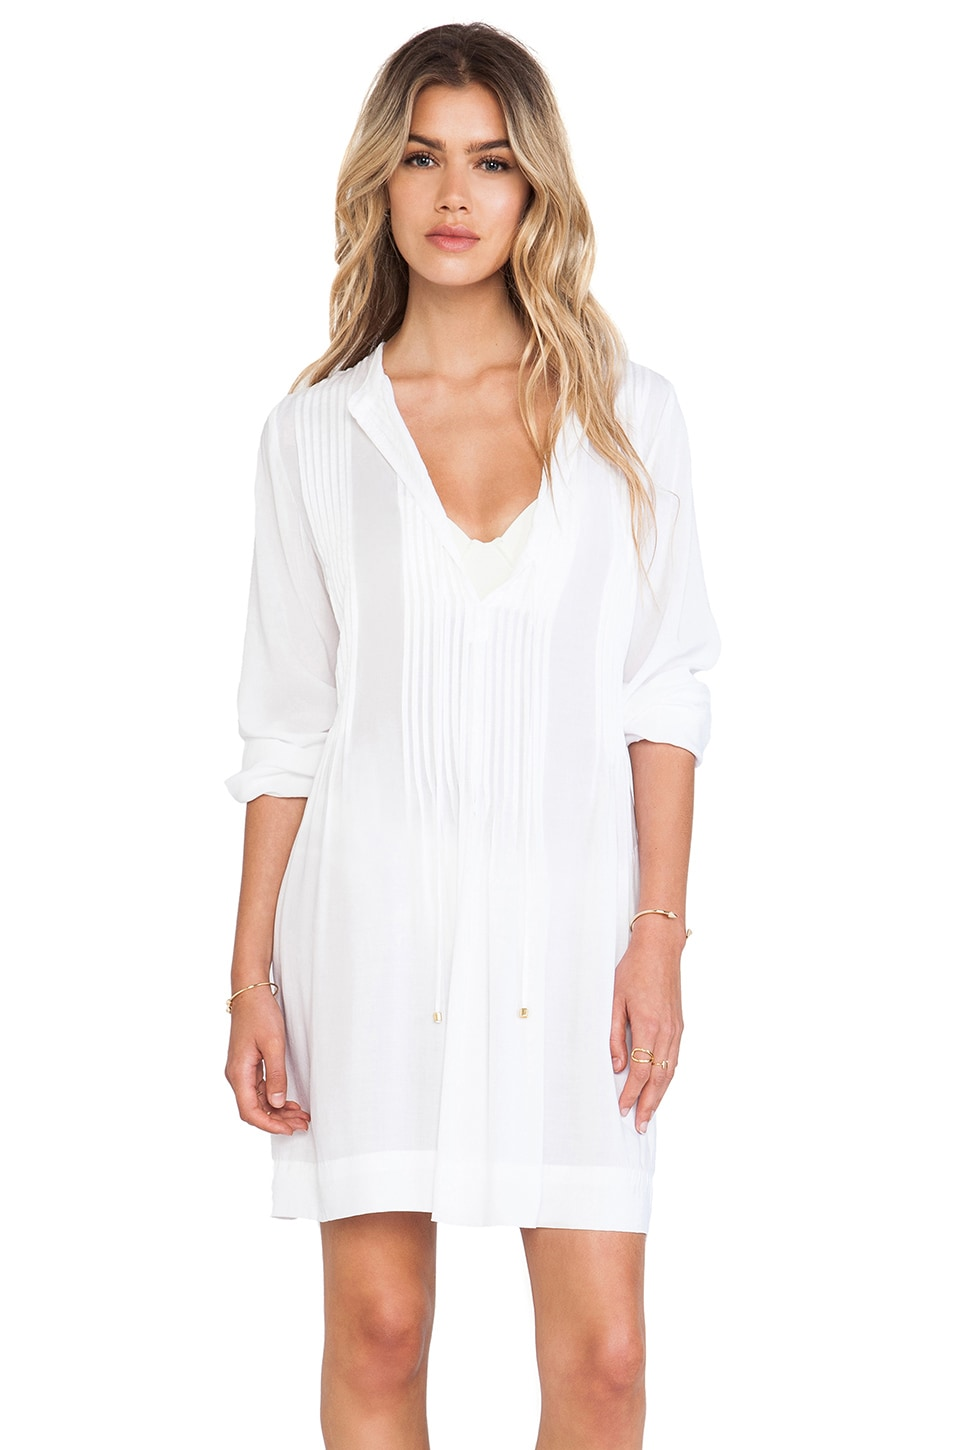 Vix Swimwear Catarina Tunic in Solid White